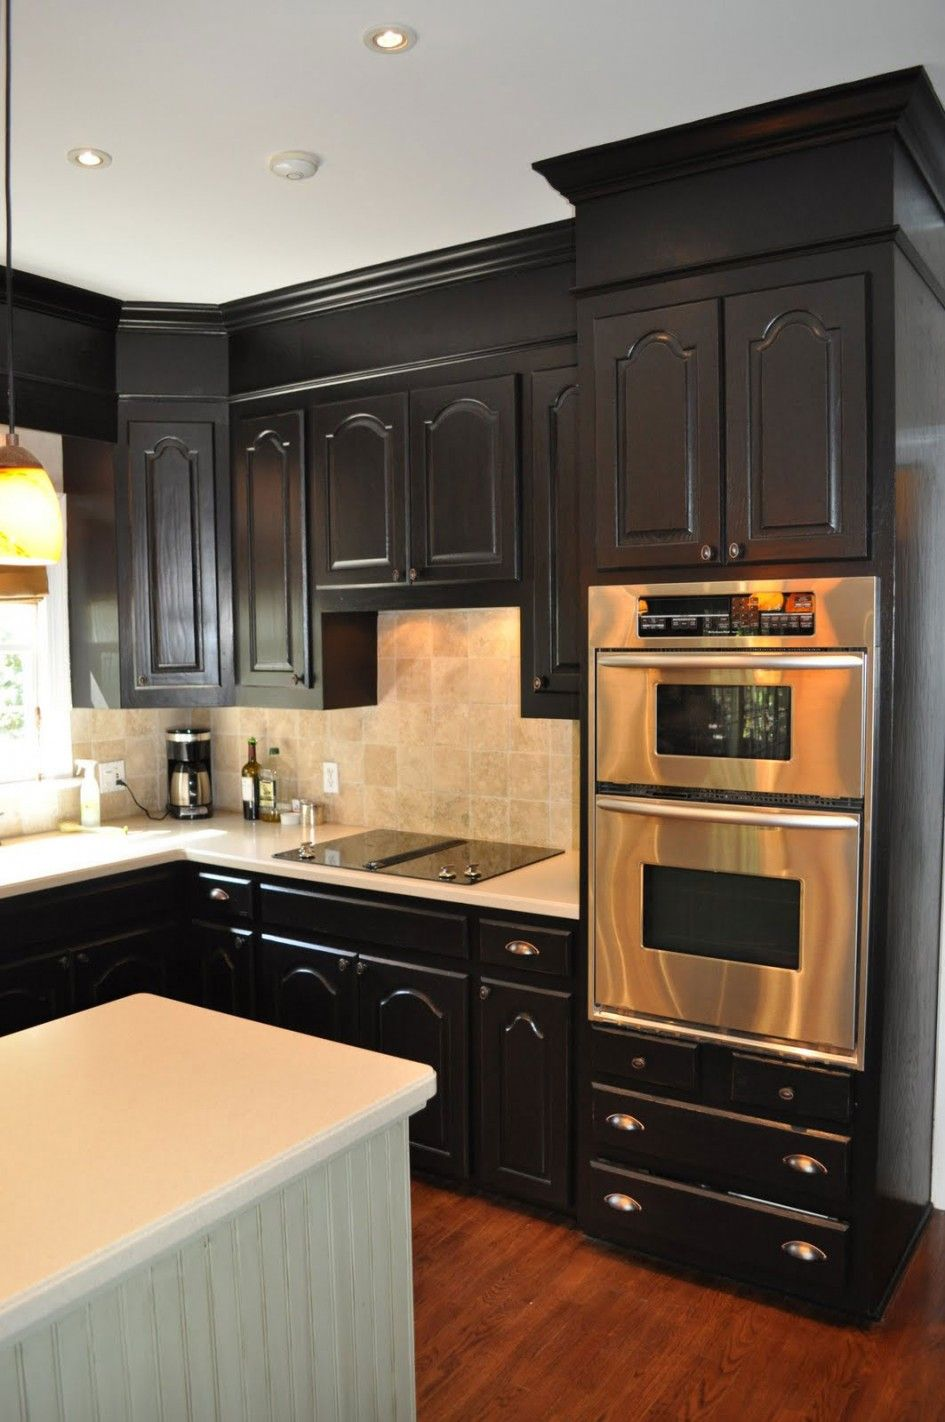 Kitchen Cabinet Exceptional Creative Corner Ideas With Cathedral Doors Style In Black Also Whirlpool Double Electric Wall Oven Stainless